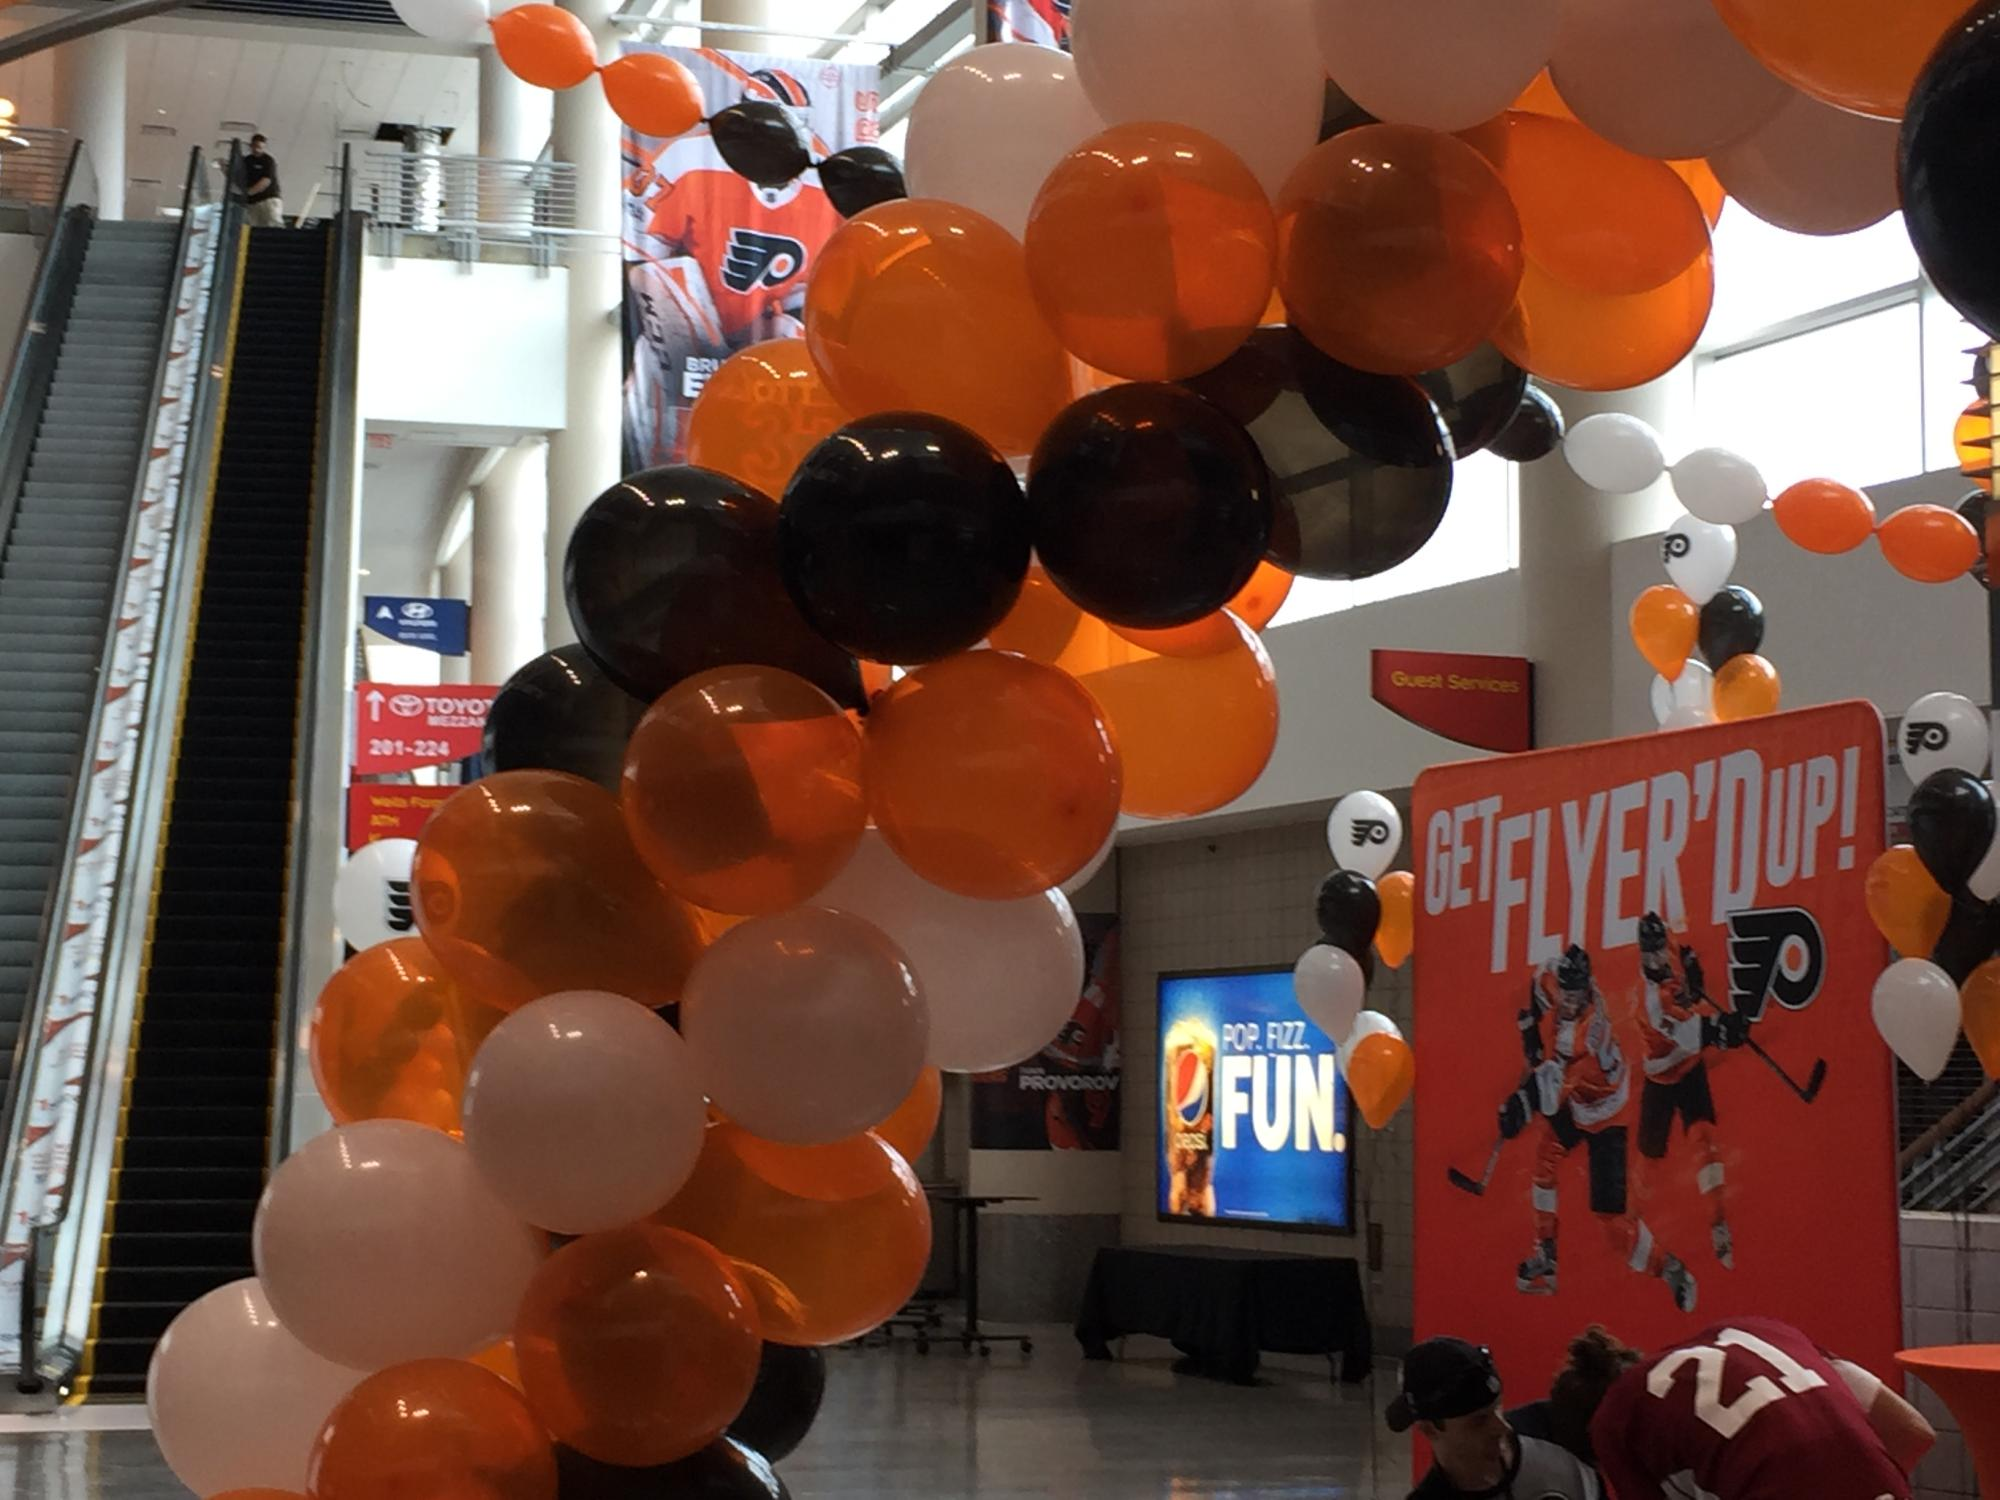 Balloon arches for the Philadelphia Flyers